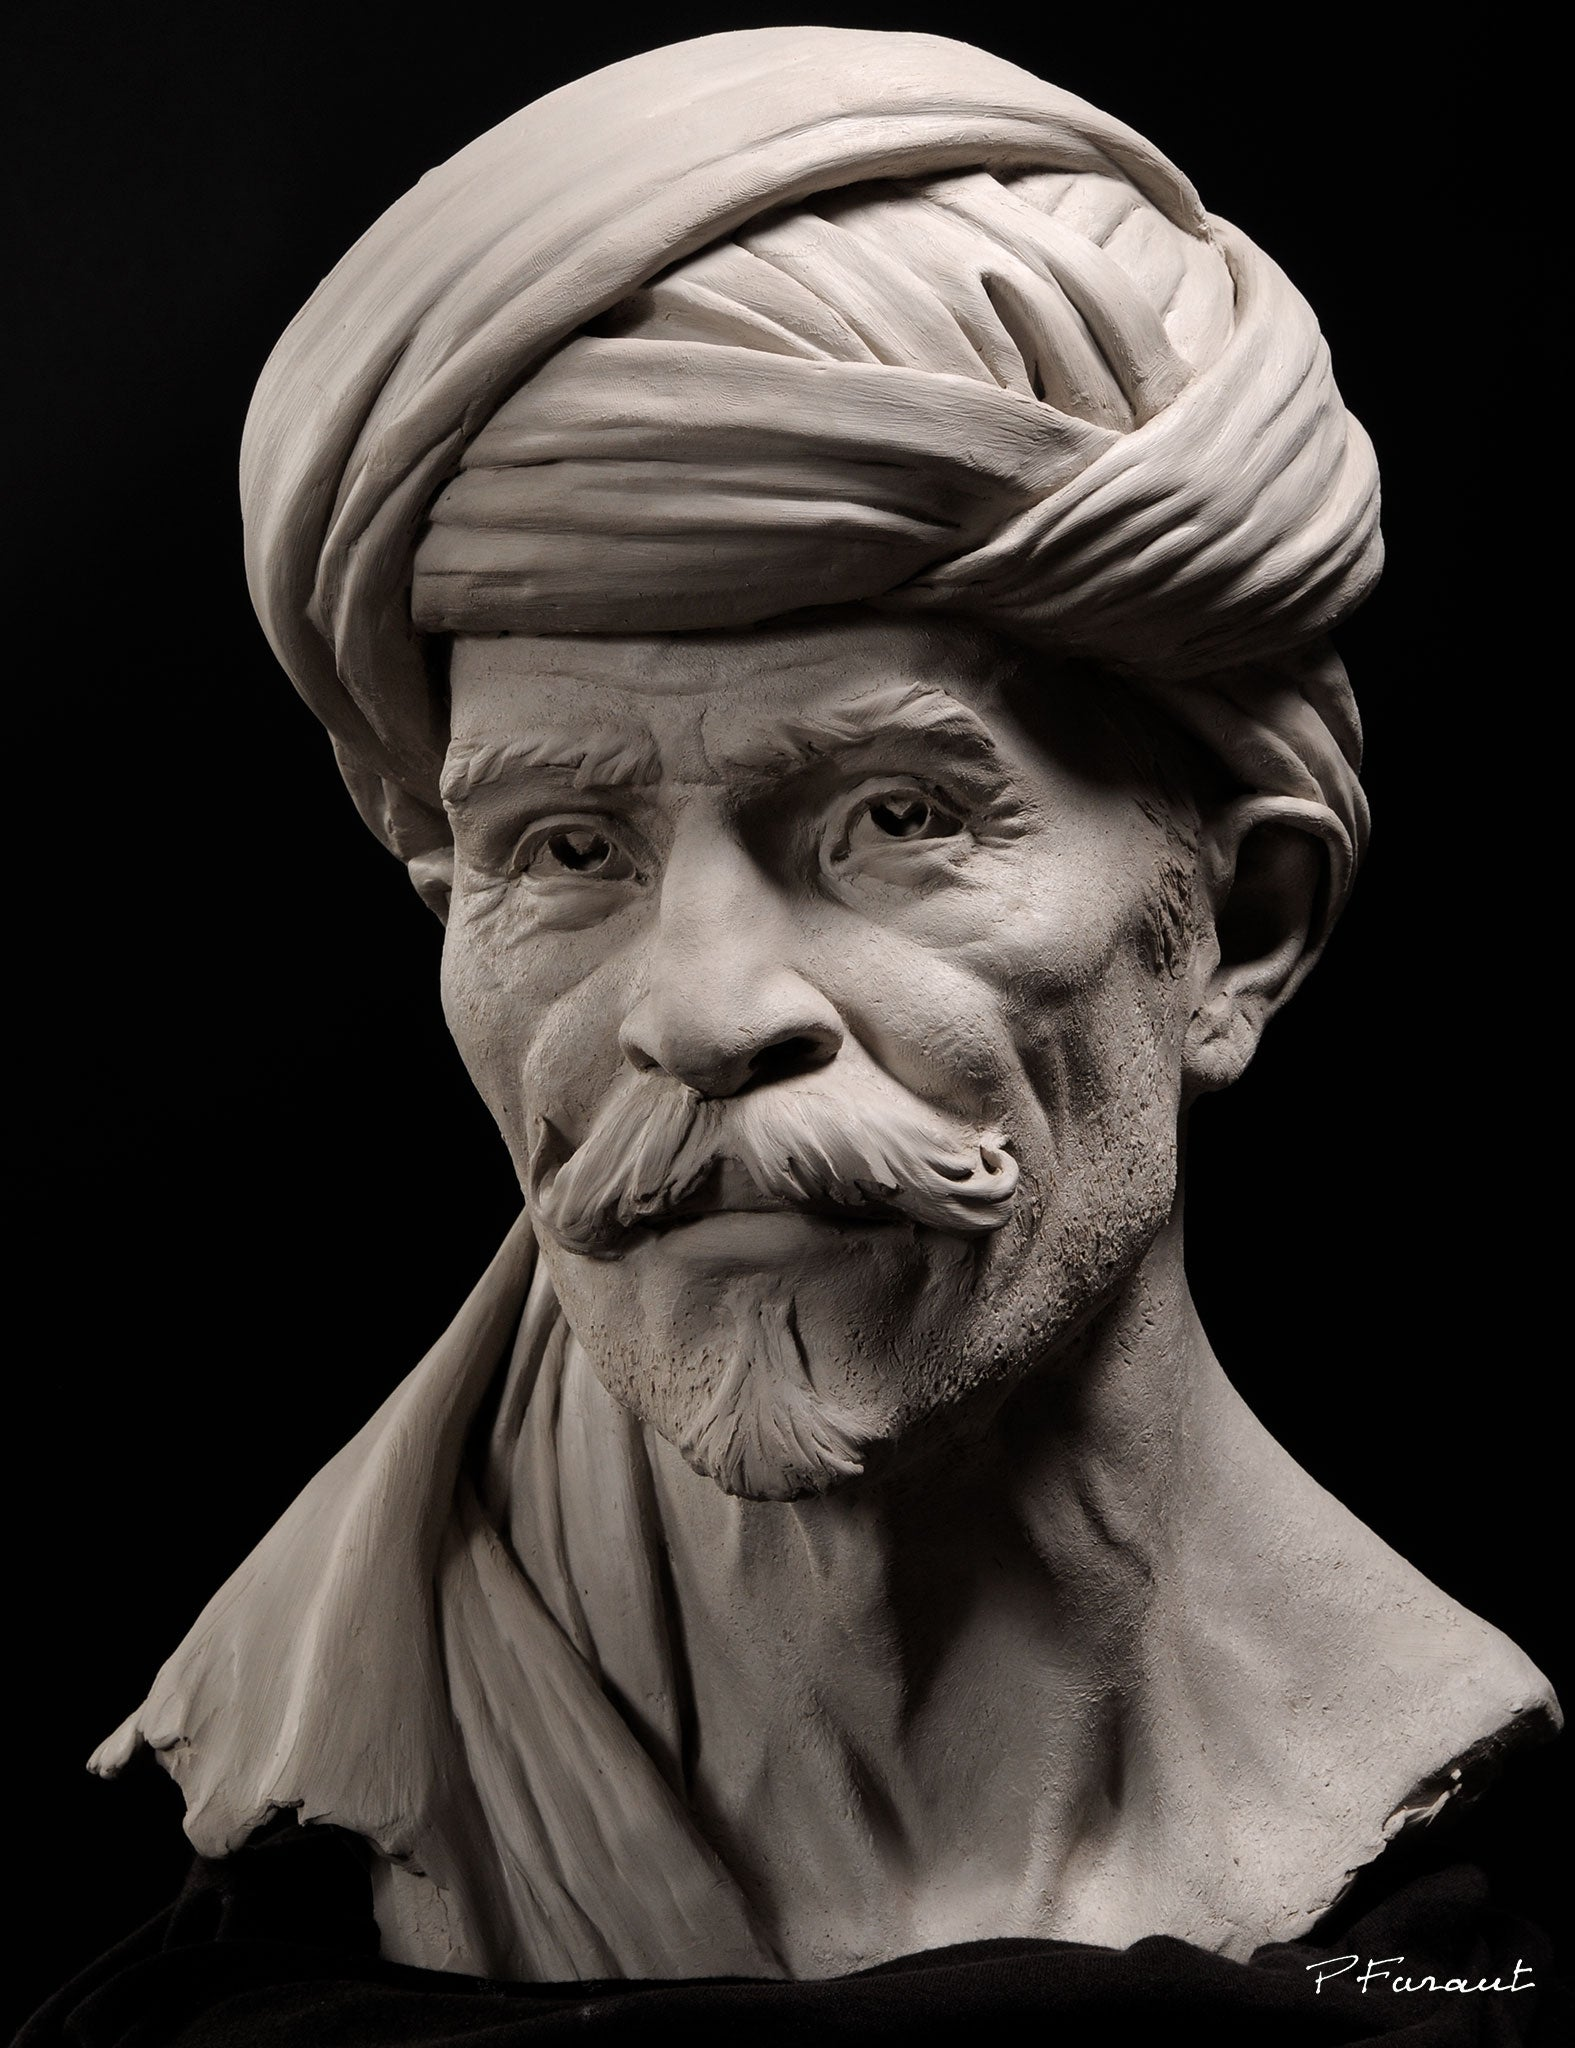 clay portrait of arabian man with turban Bedouin by Philippe Faraut